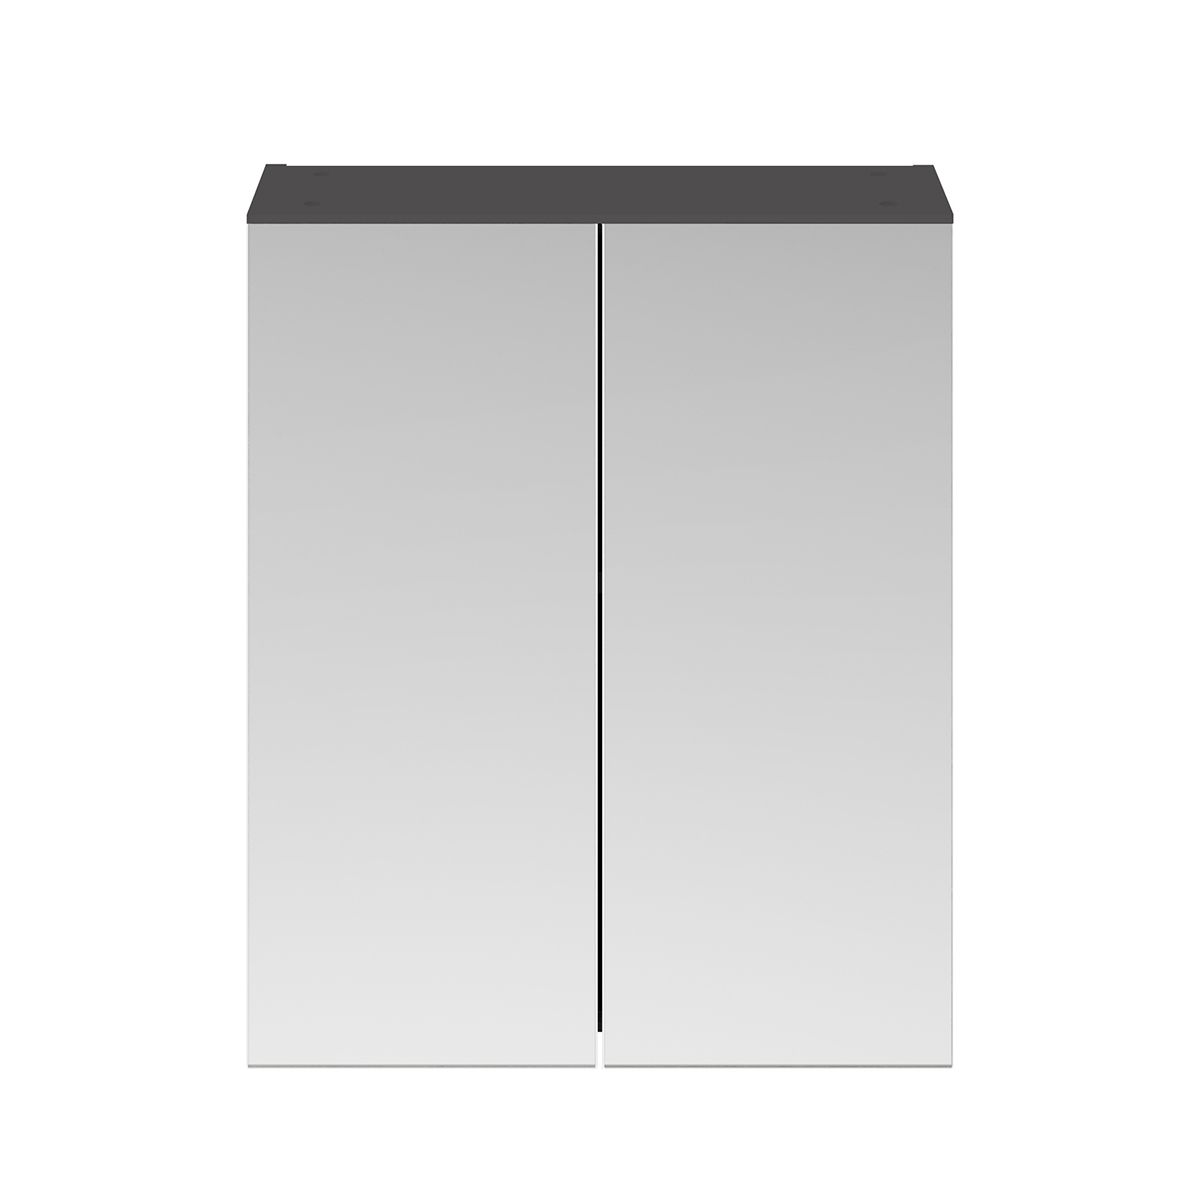 Nuie Athena Gloss Grey Double Mirrored Bathroom Cabinet